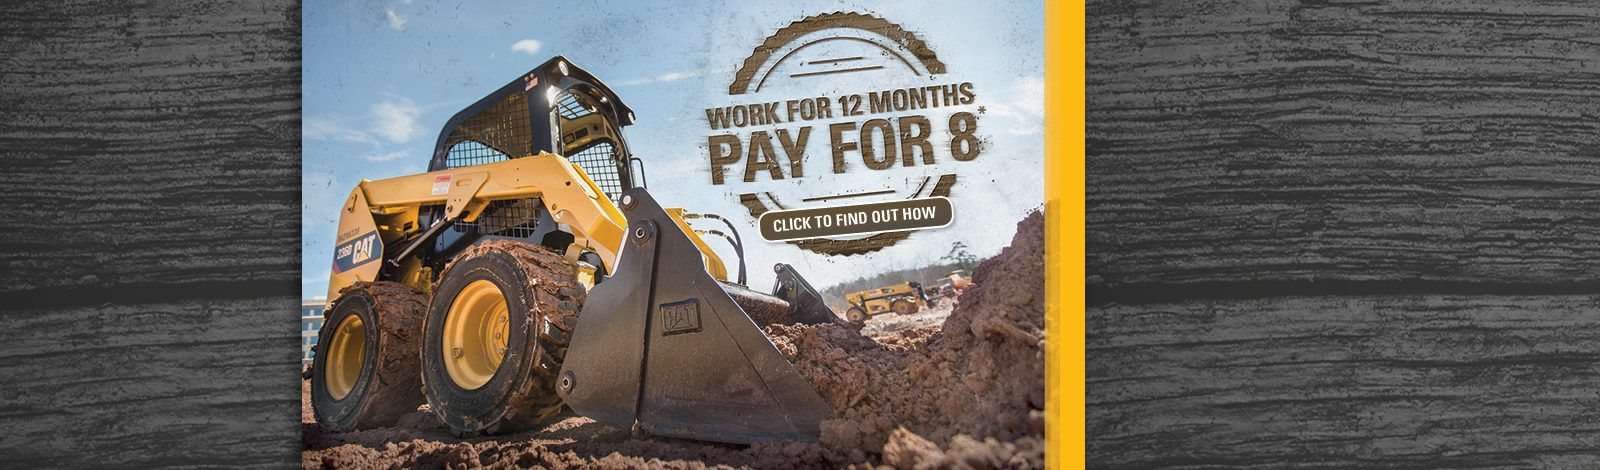 Work For 12 Months Pay For 8